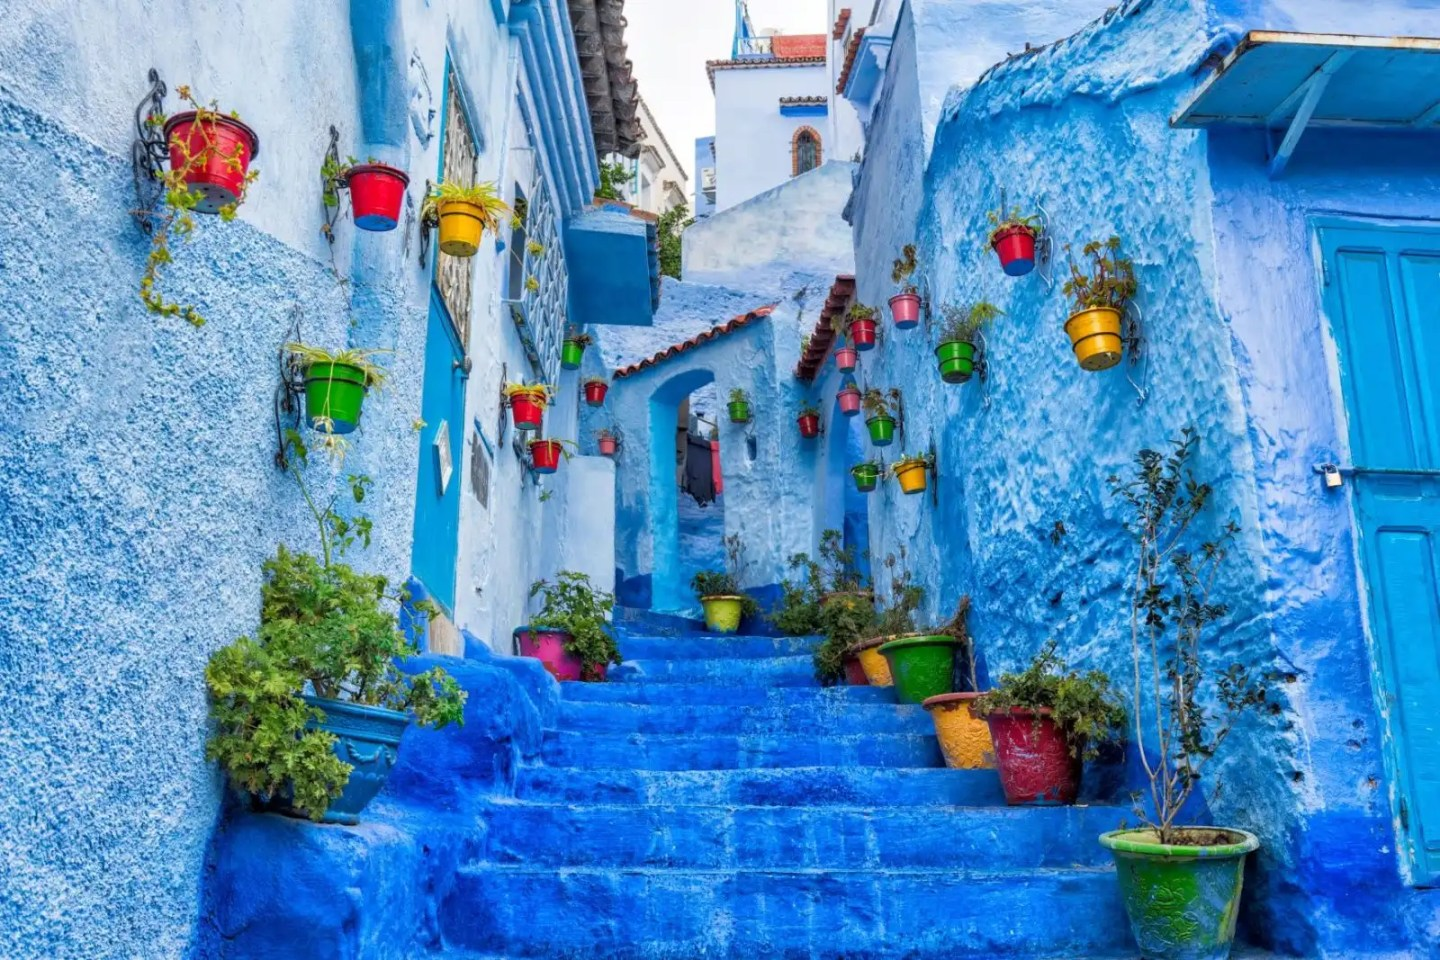 One week in Morocco - Chefchaouen